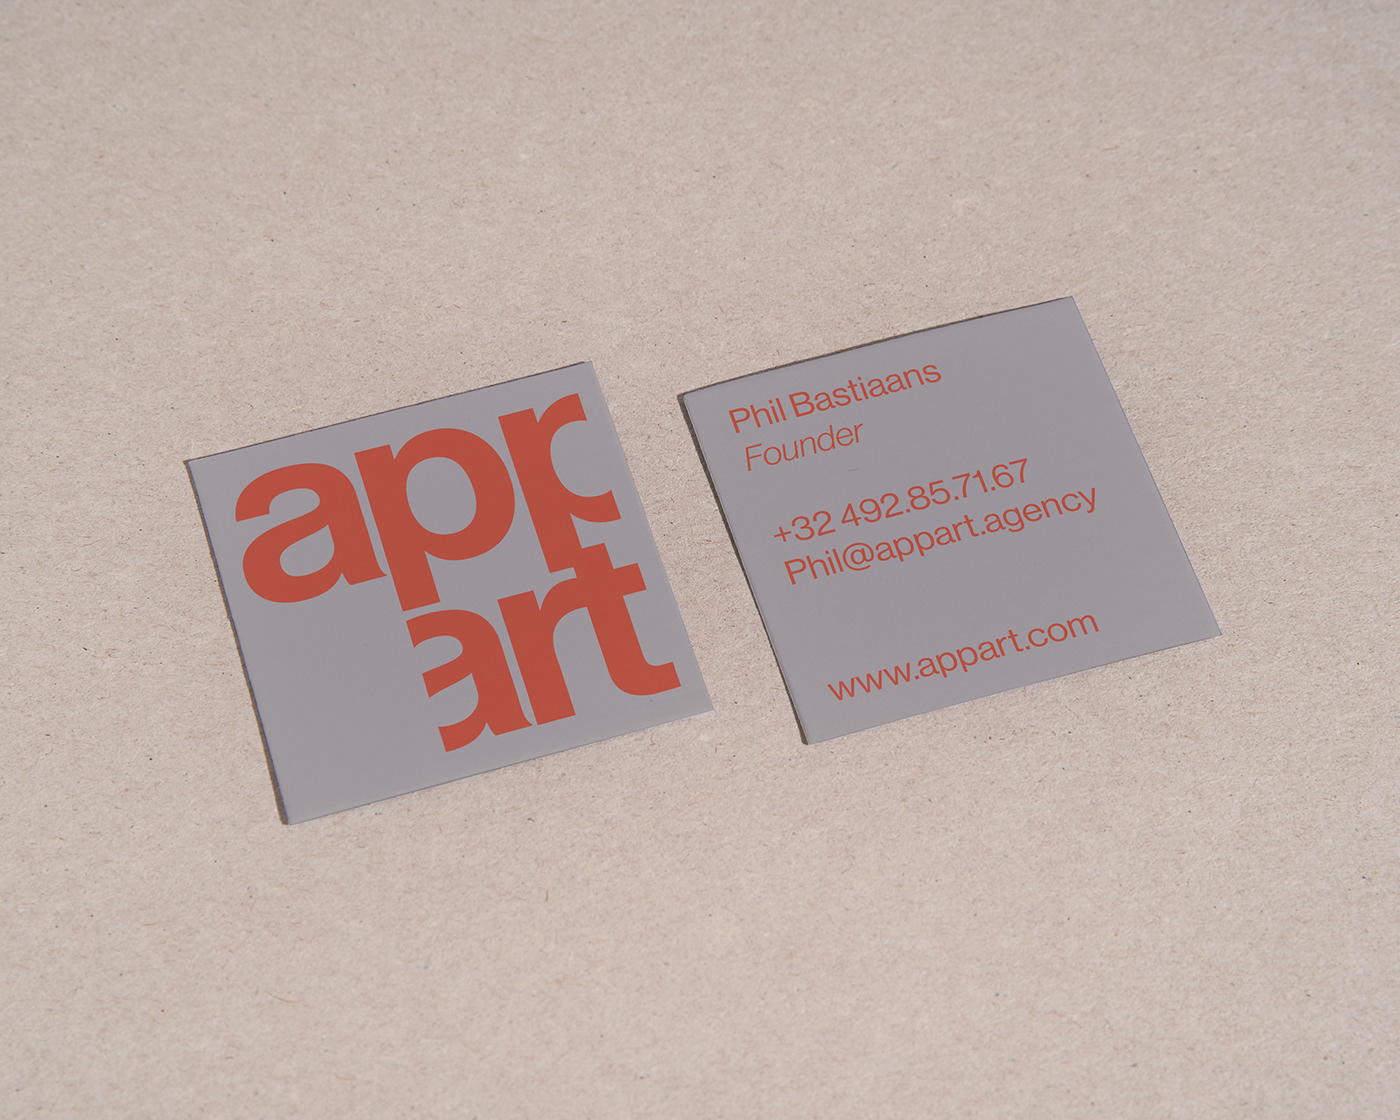 Appart business cards